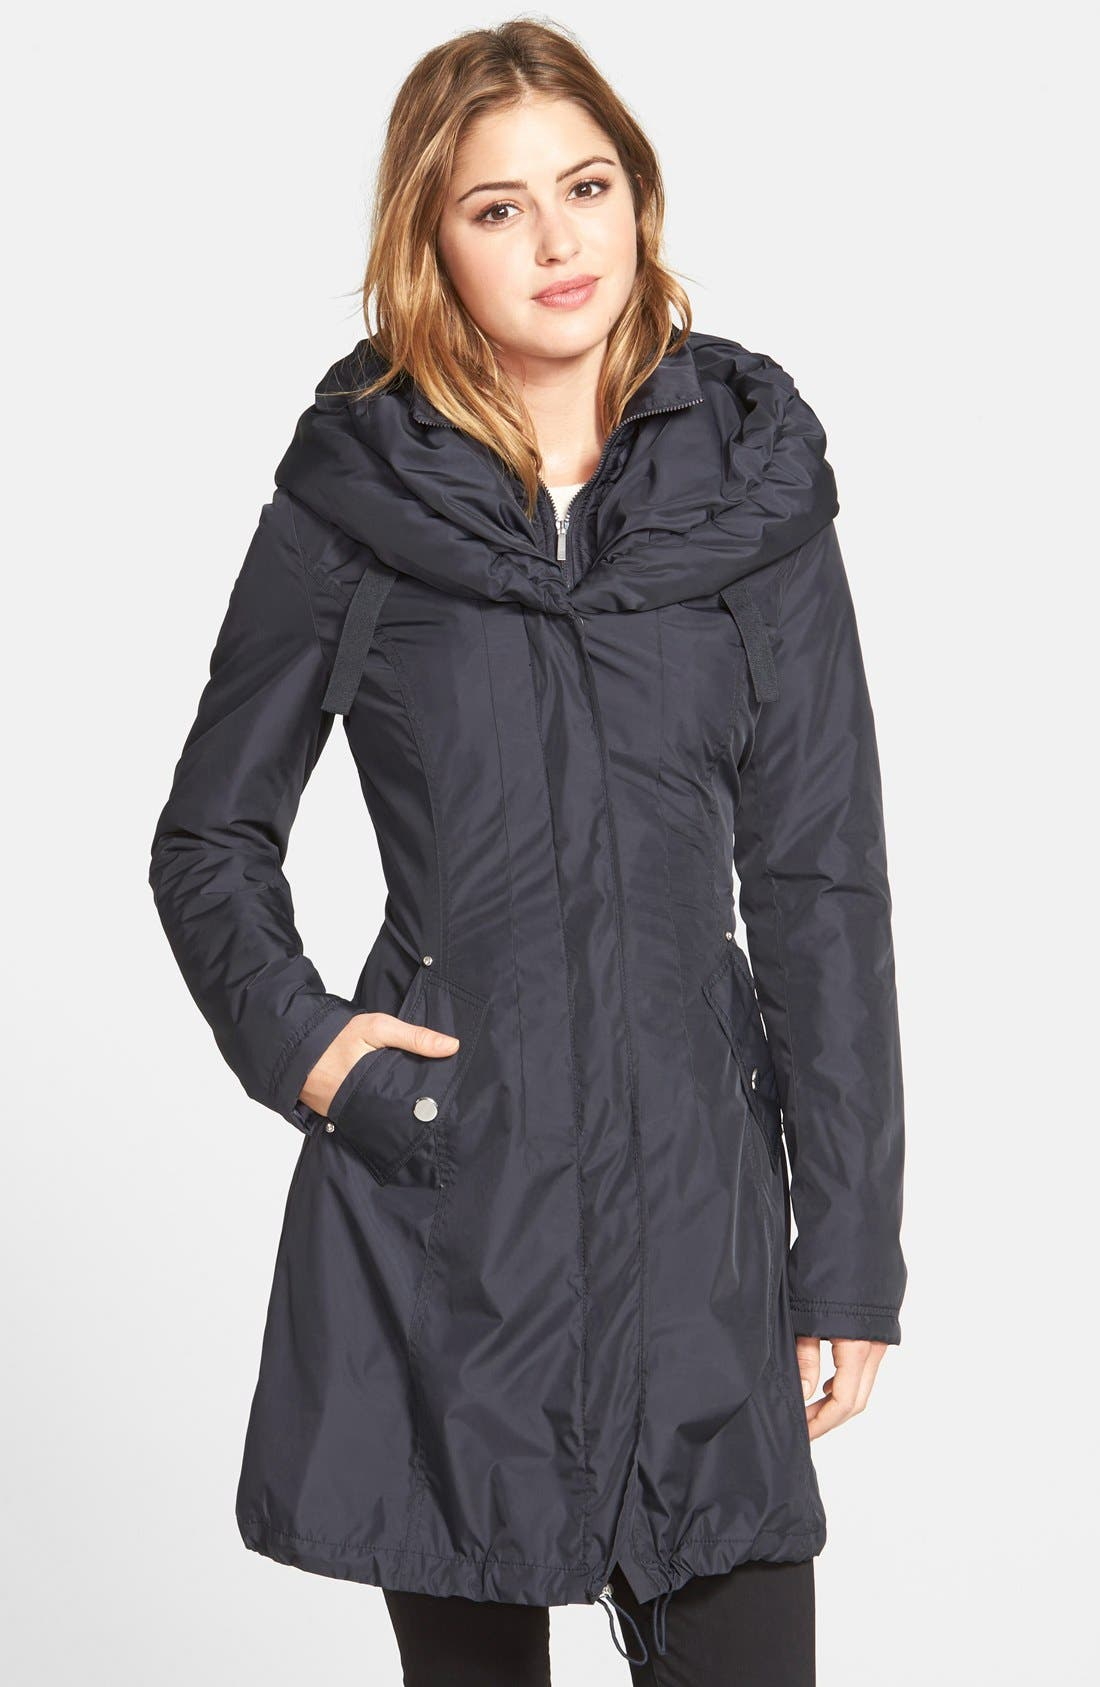 Laundry by Shelli Segal Pillow Collar Raincoat with Detachable Quilted Hooded Bib Insert (Regular & Petite)